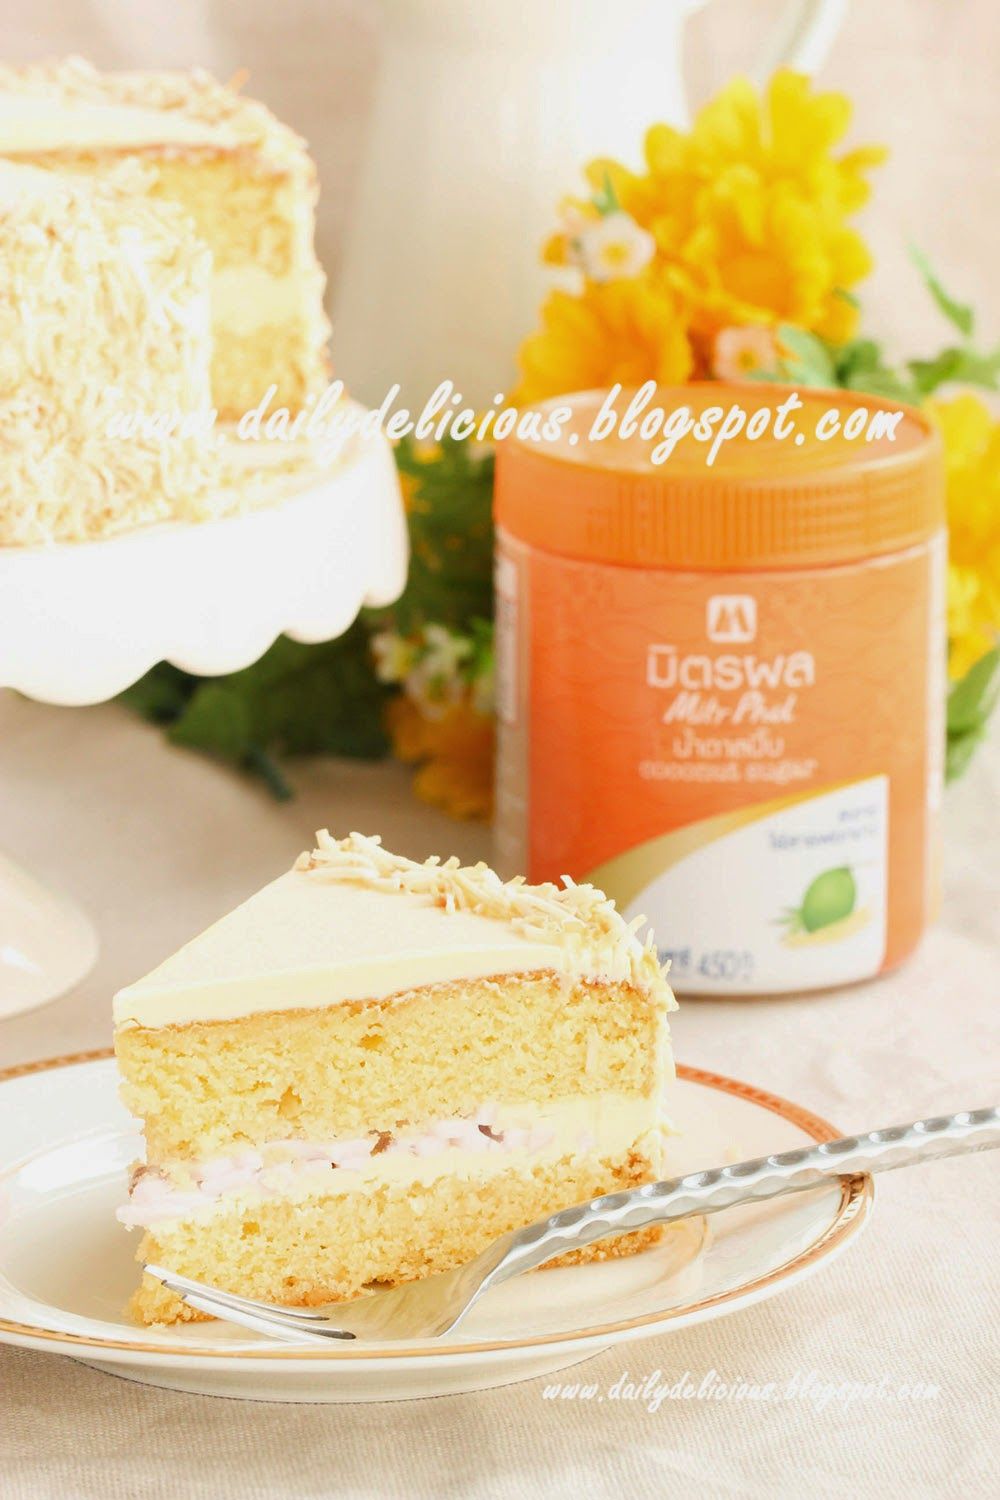 coconut sugar cake: another place for delicious sugar